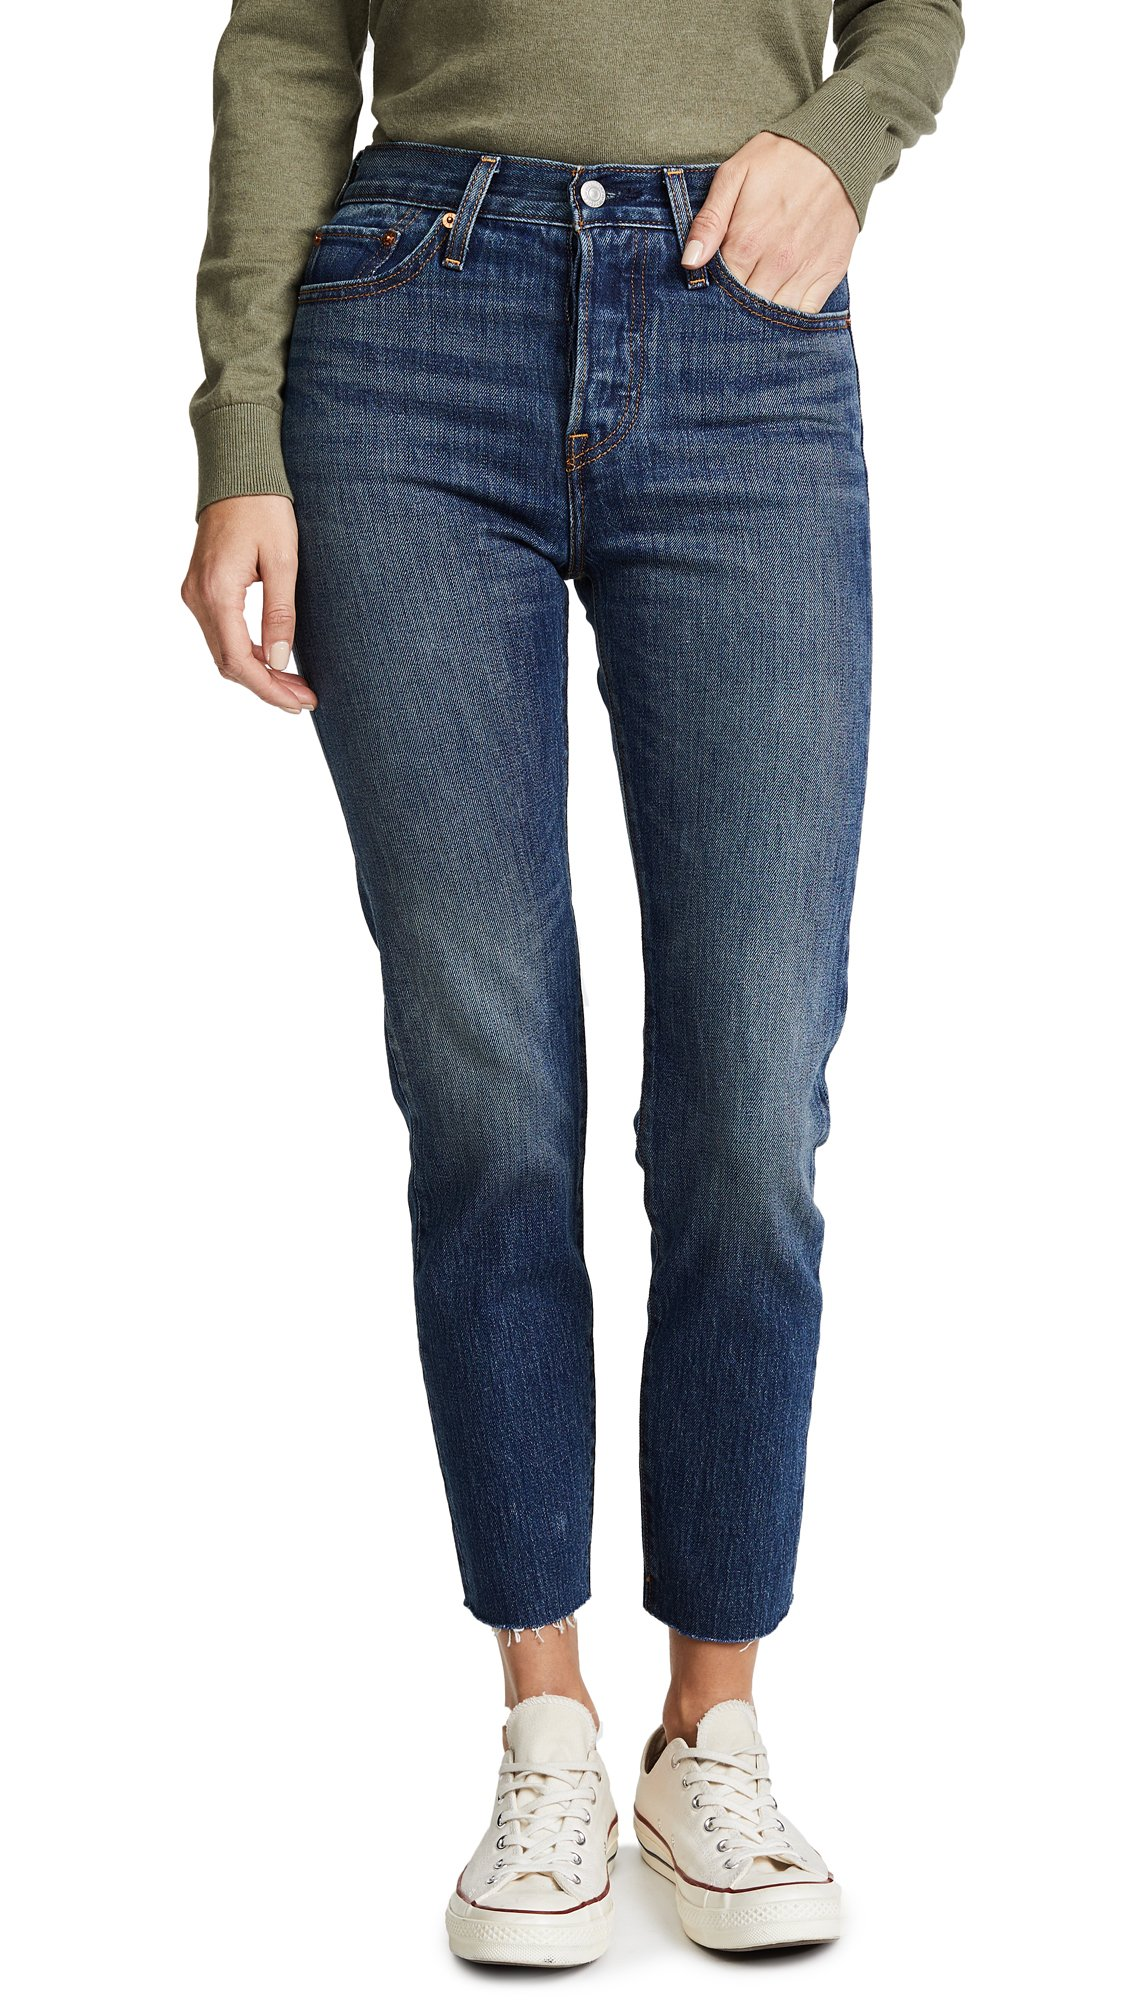 Levi's Women's Wedgie Icon Jeans, Classic Tint, 27 (US 4)